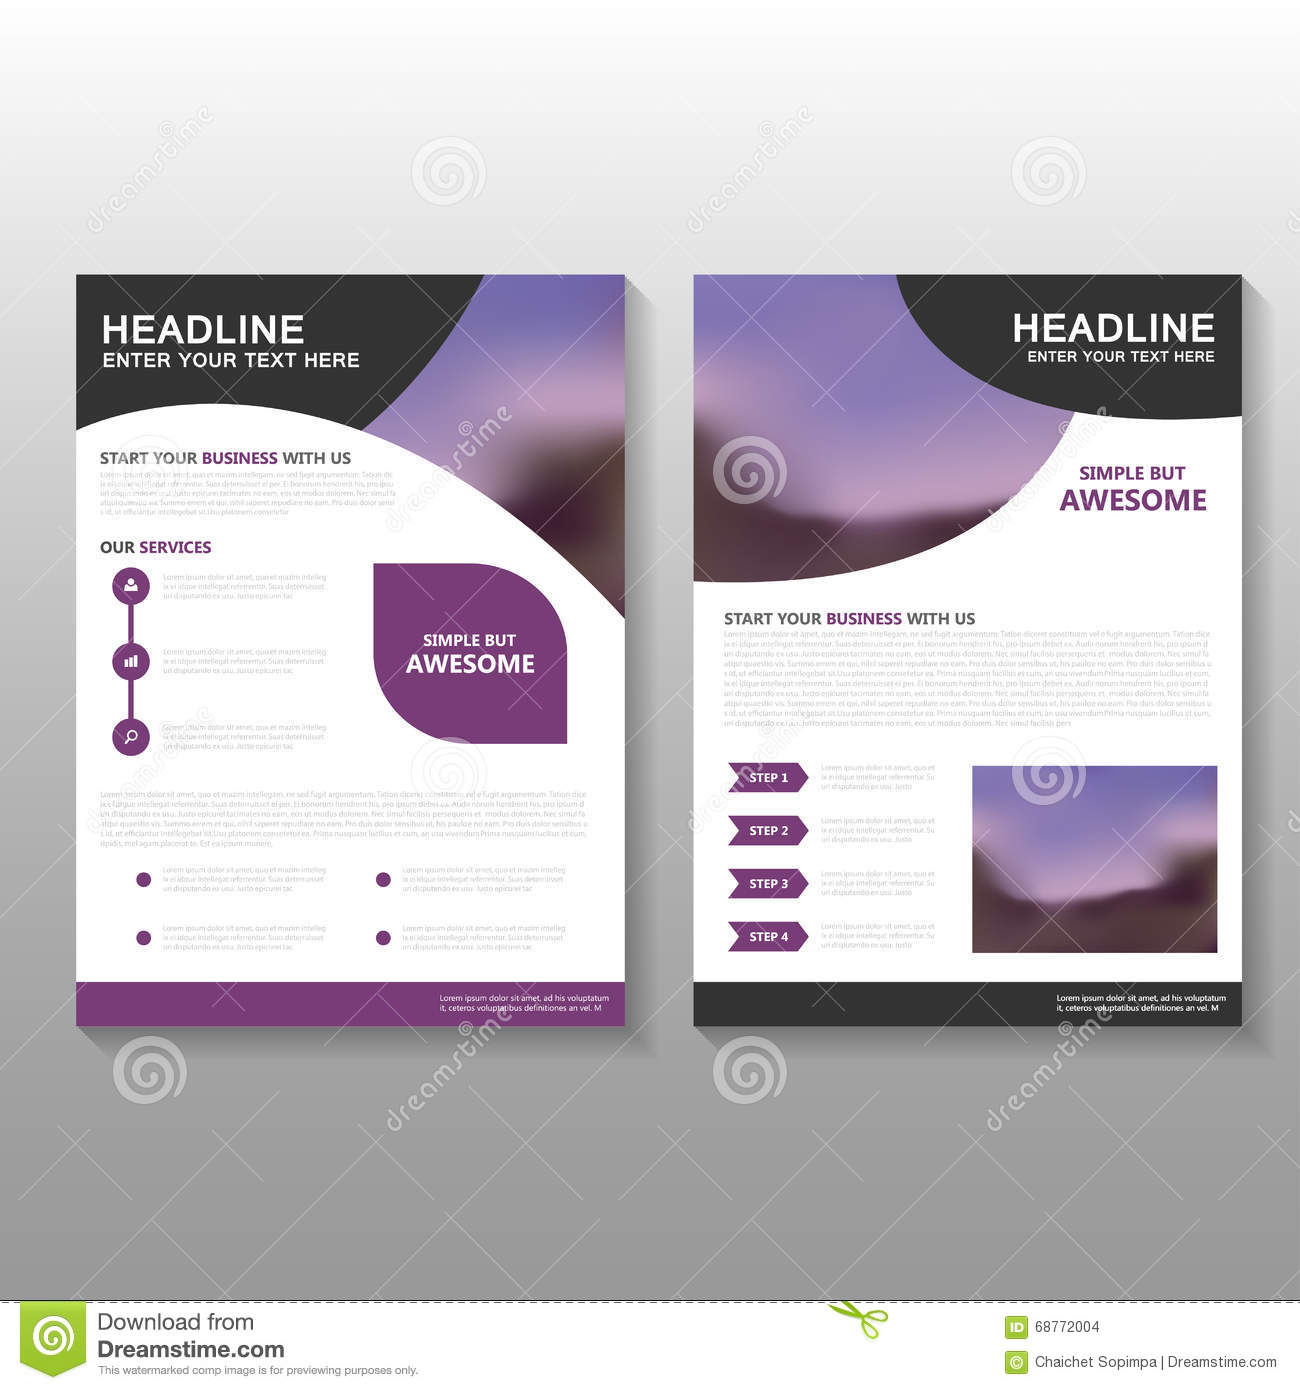 business brochure template - abstract business brochure vector illustration